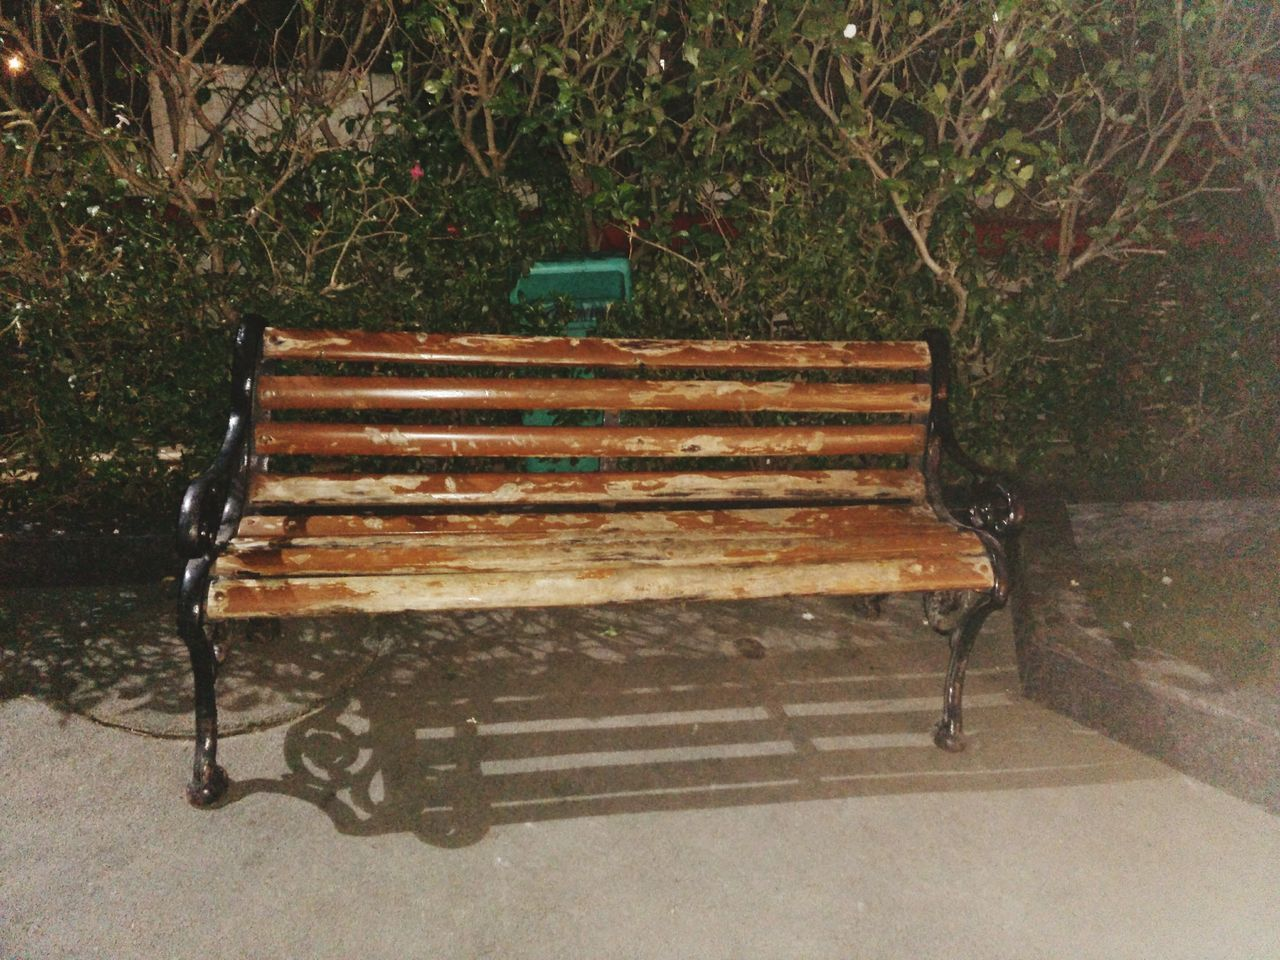 Bench Park Bench Park - Man Made Space Empty Chair No People Outdoors Day Foldable Nature